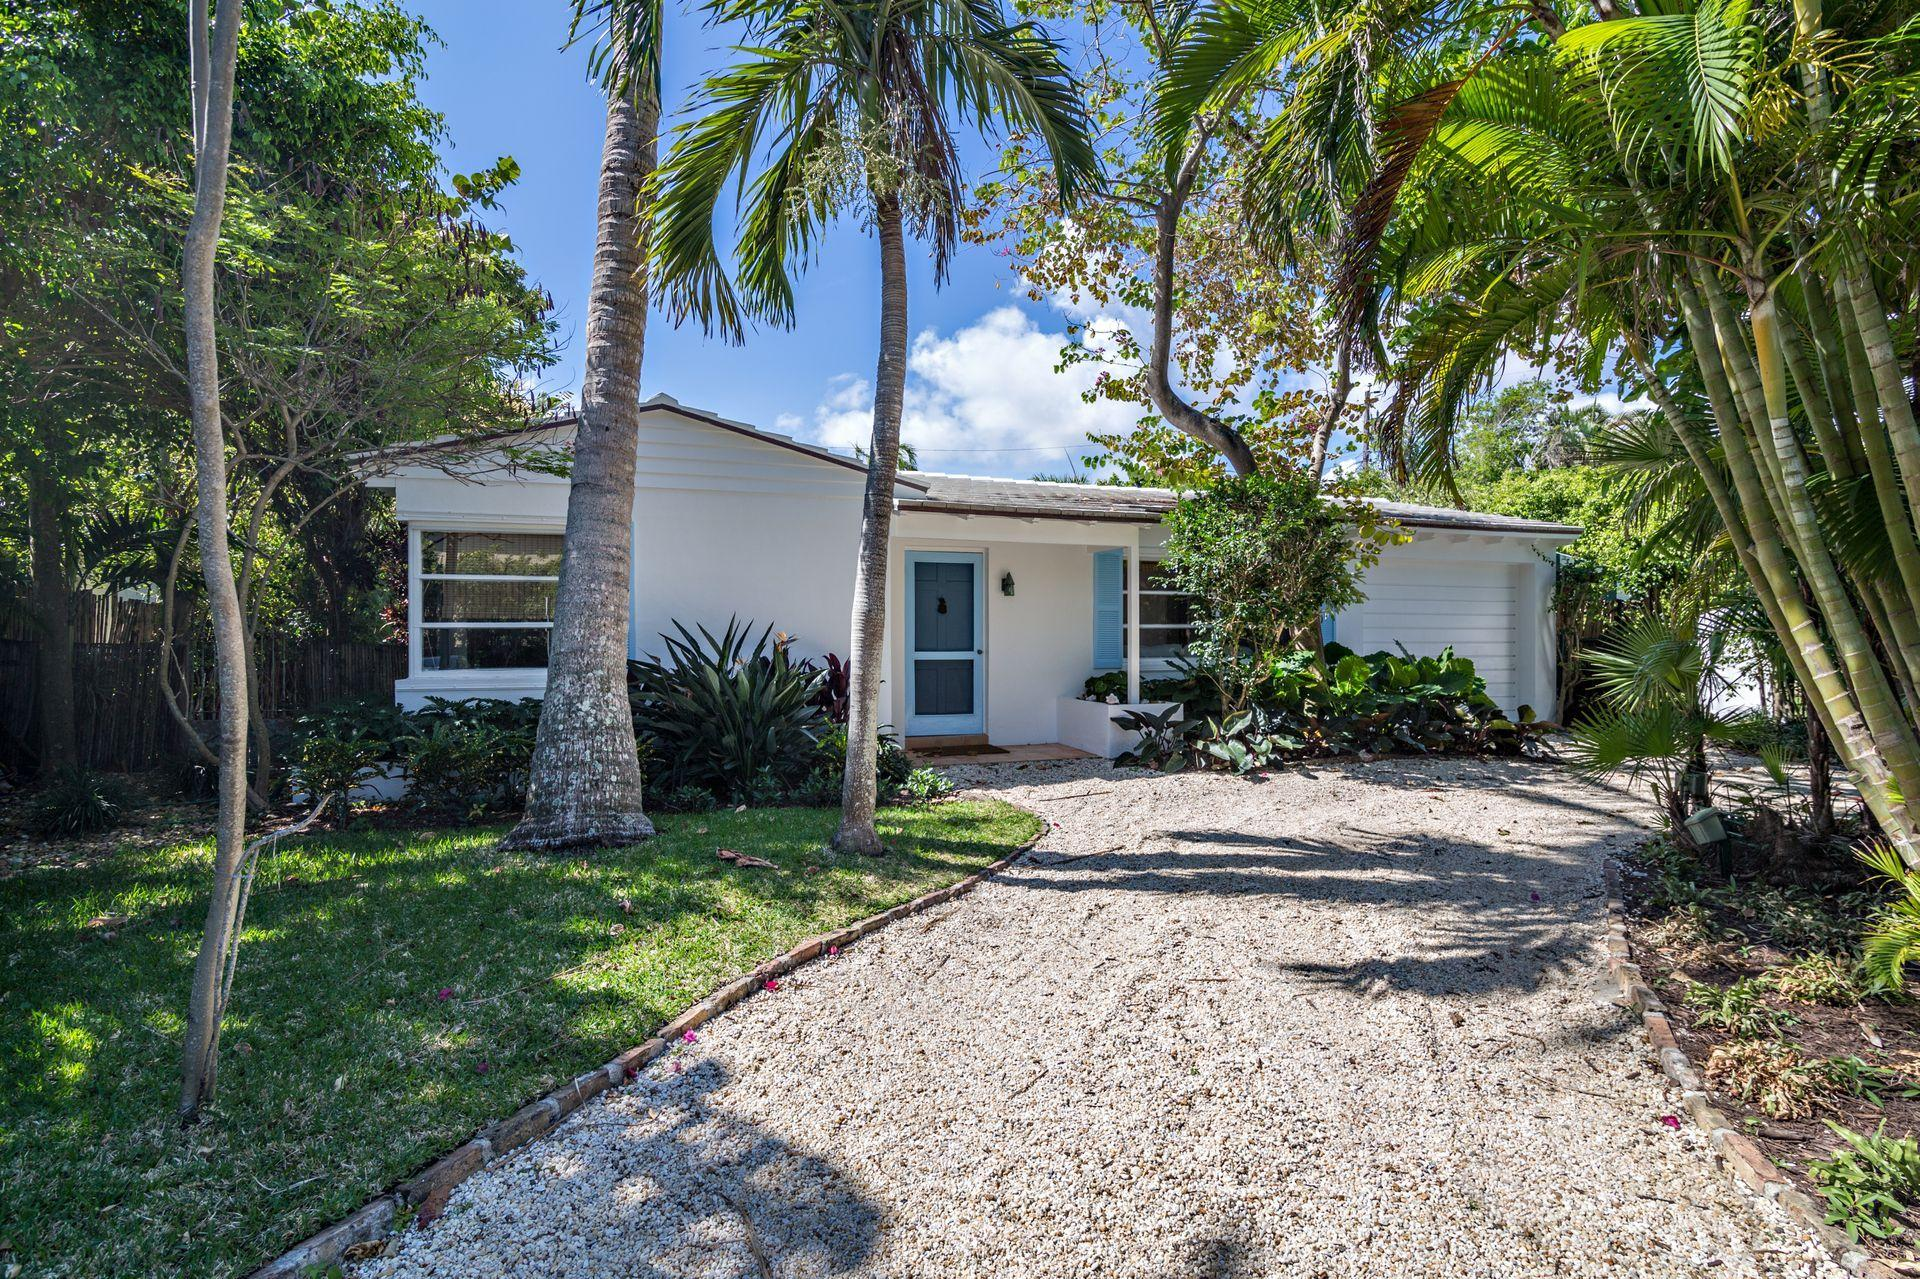 210 Debra Lane - Palm Beach, Florida